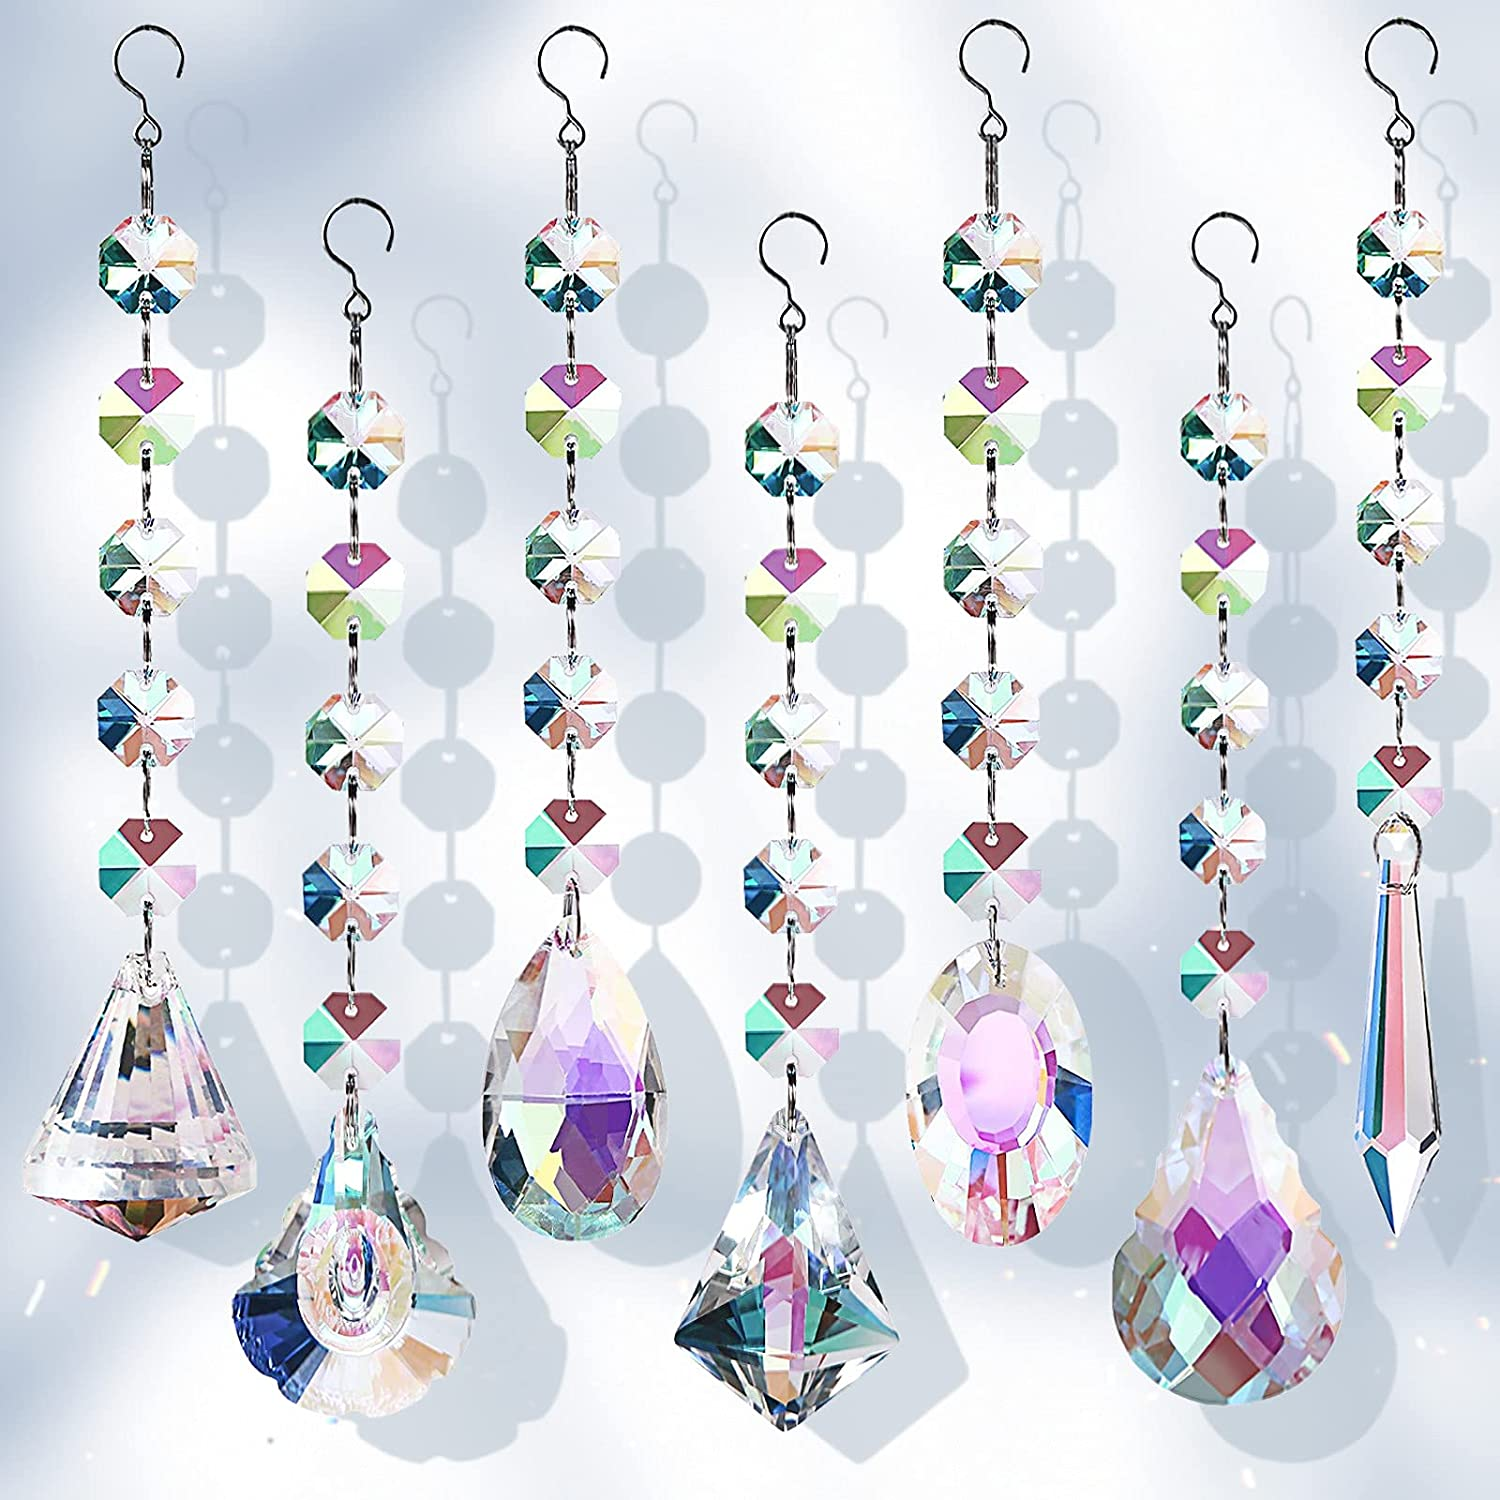 Bronlama Sun Catchers with Crystals, 7 Pcs Hanging Crystals Suncatchers for Windows, Colored Crystals Prisms Glass Pendant Suncatchers Beads for Chandeliers, Garden, Christmas Tree Decoration